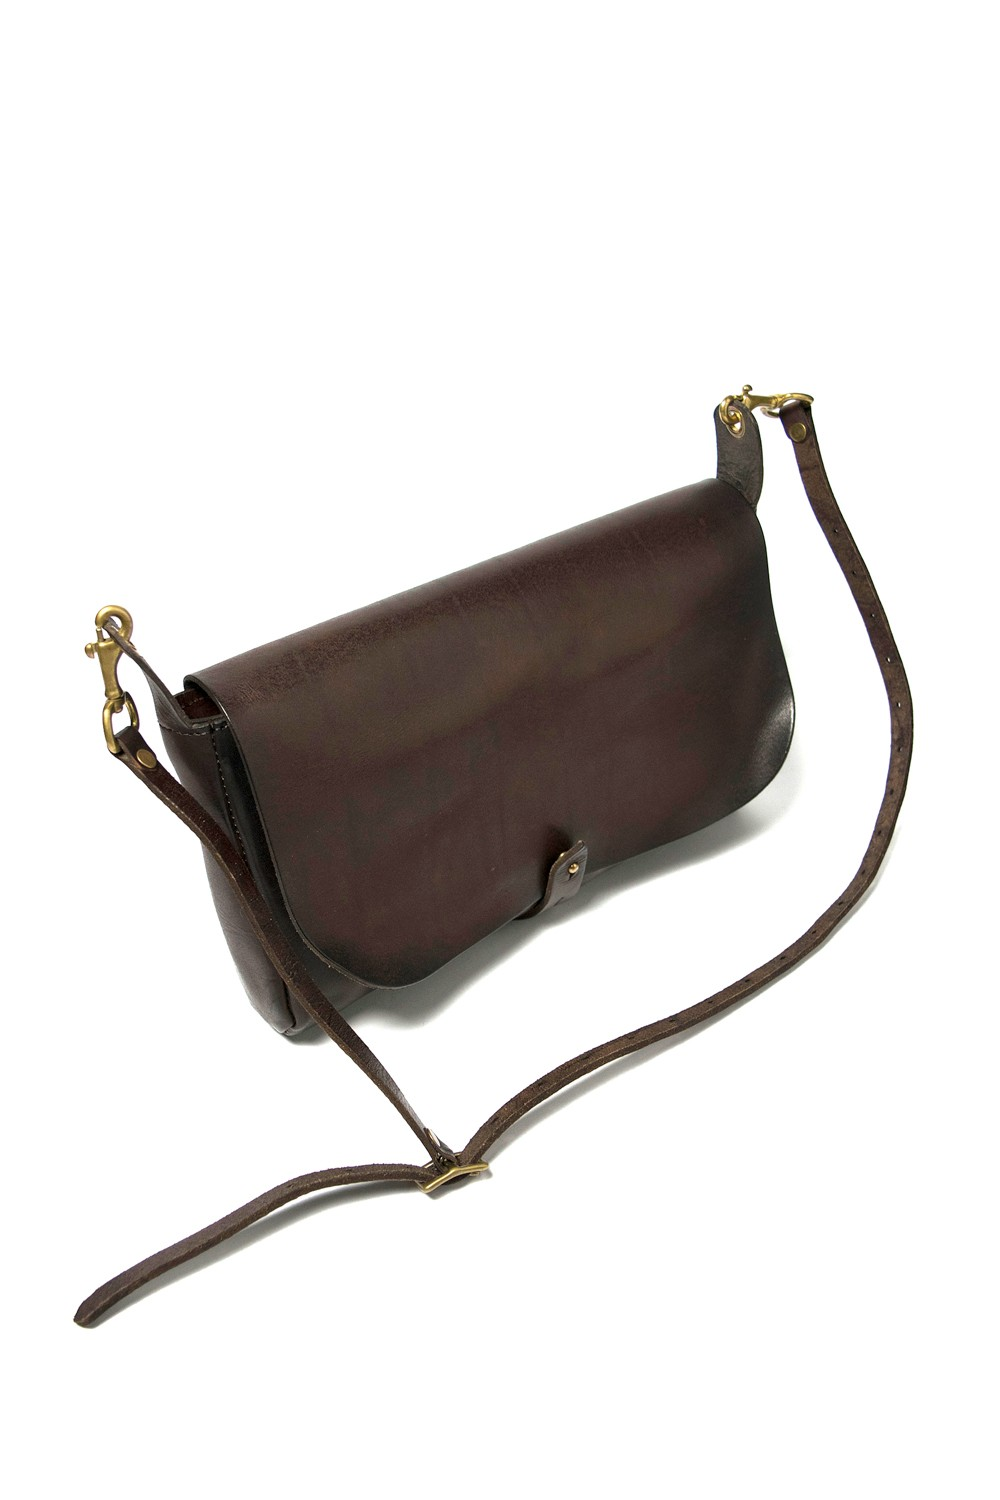 【20SS】レザー3WAYクラッチバッグ [ブラウン] / LEATHER 3WAY CLUTCH BAG [BROWN]